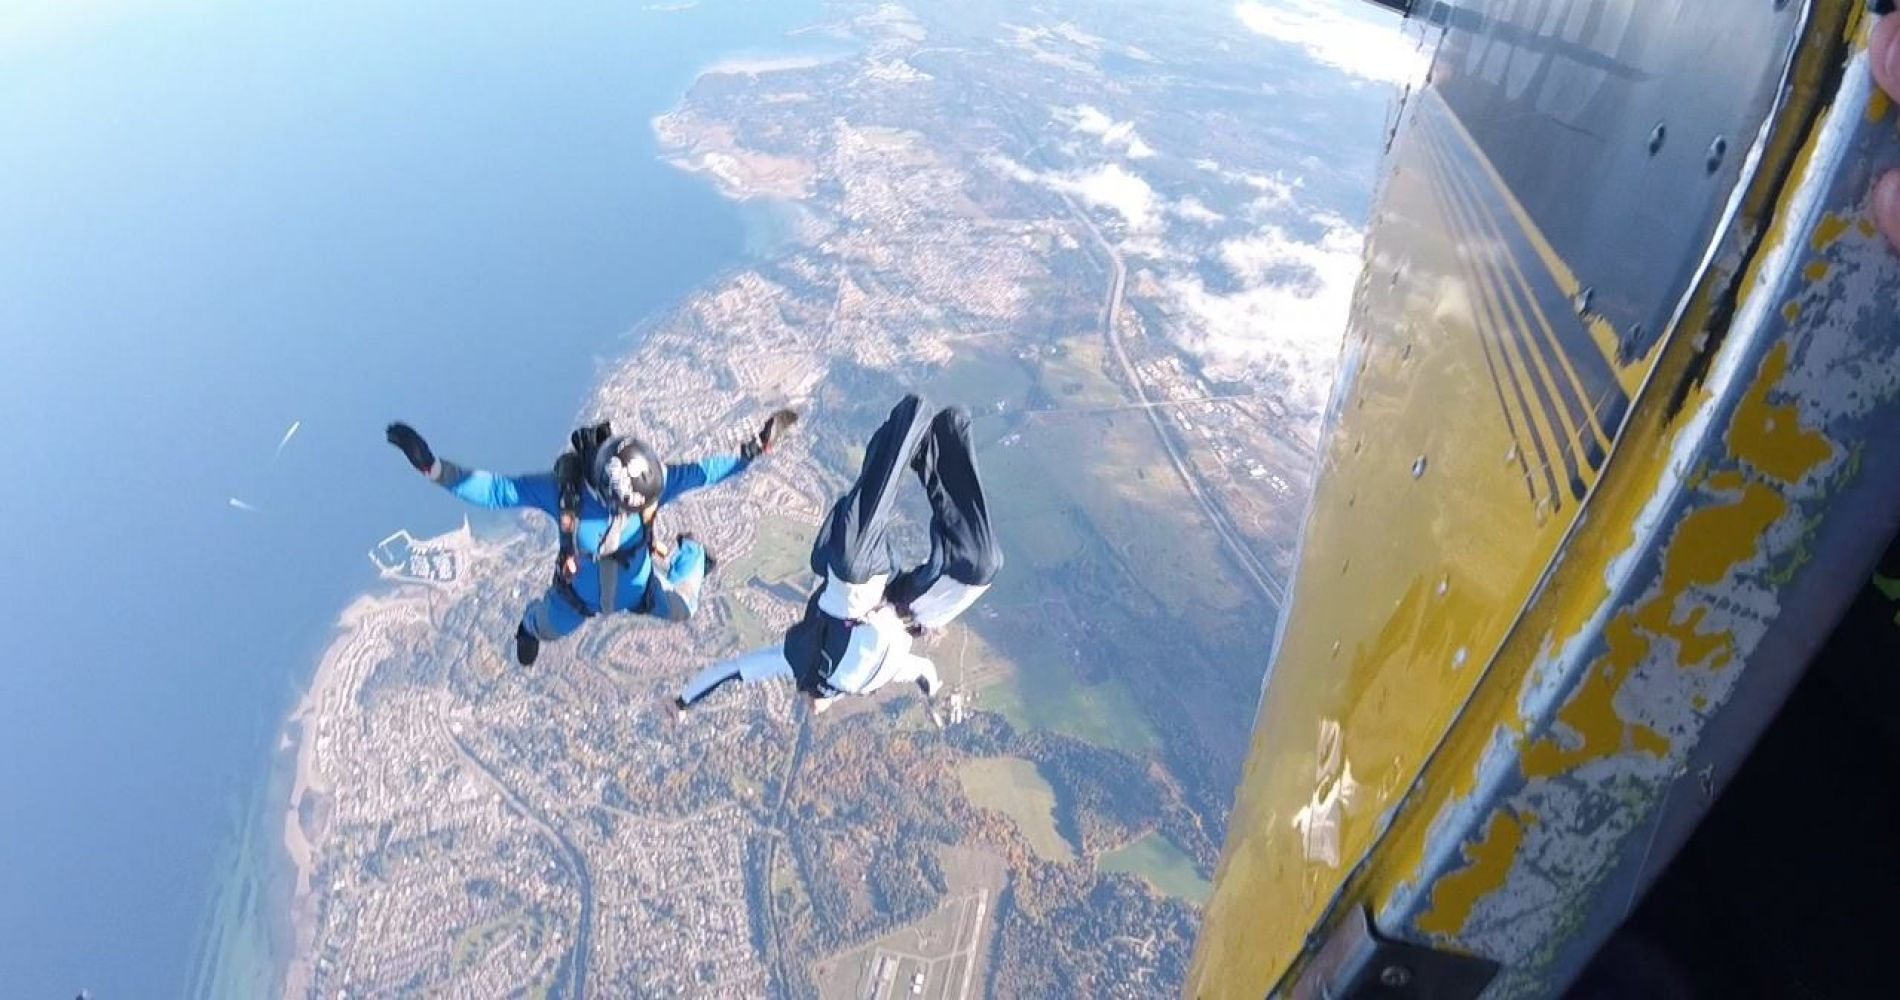 Tandem Jump above the Qualicum Beach in Canada